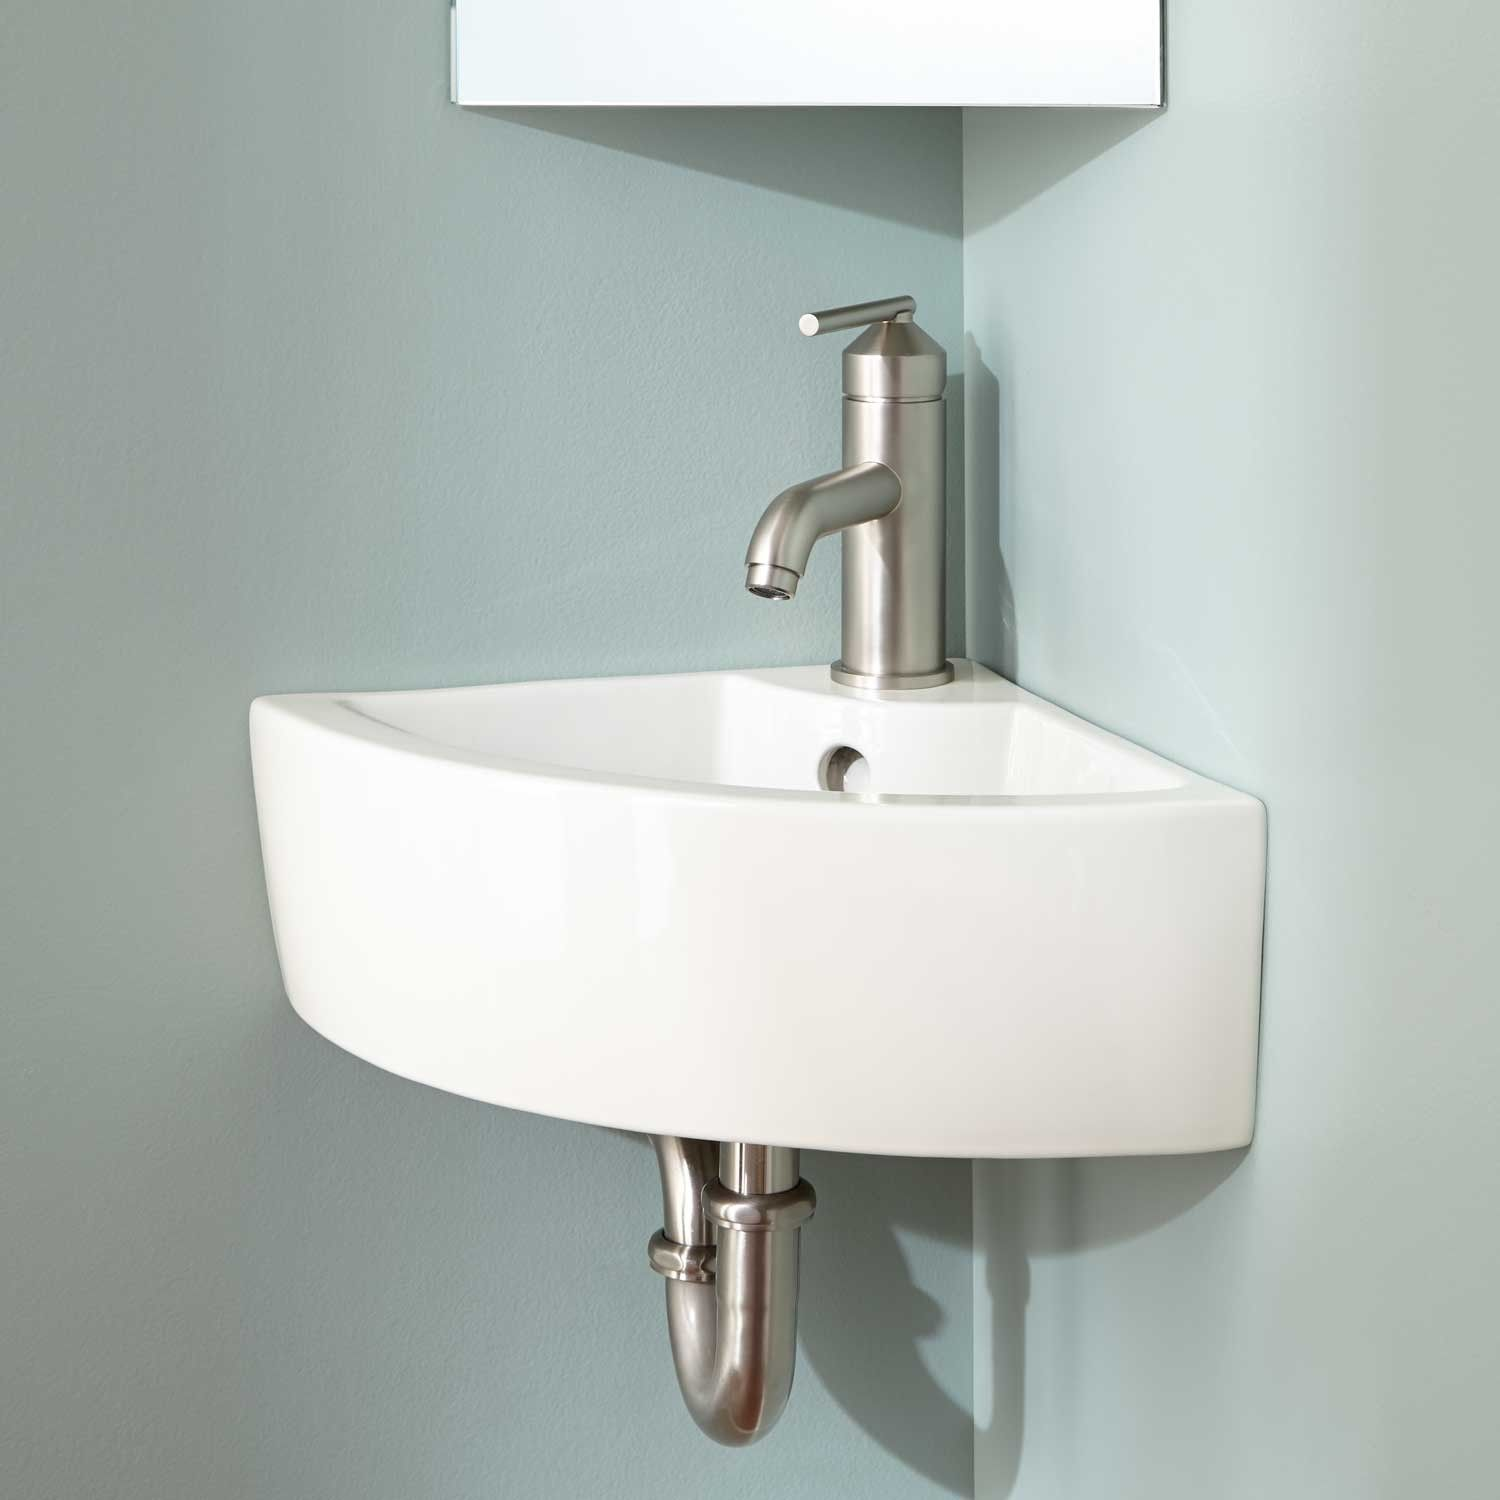 Amelda WallMount Corner Bathroom Sink  monroe 2